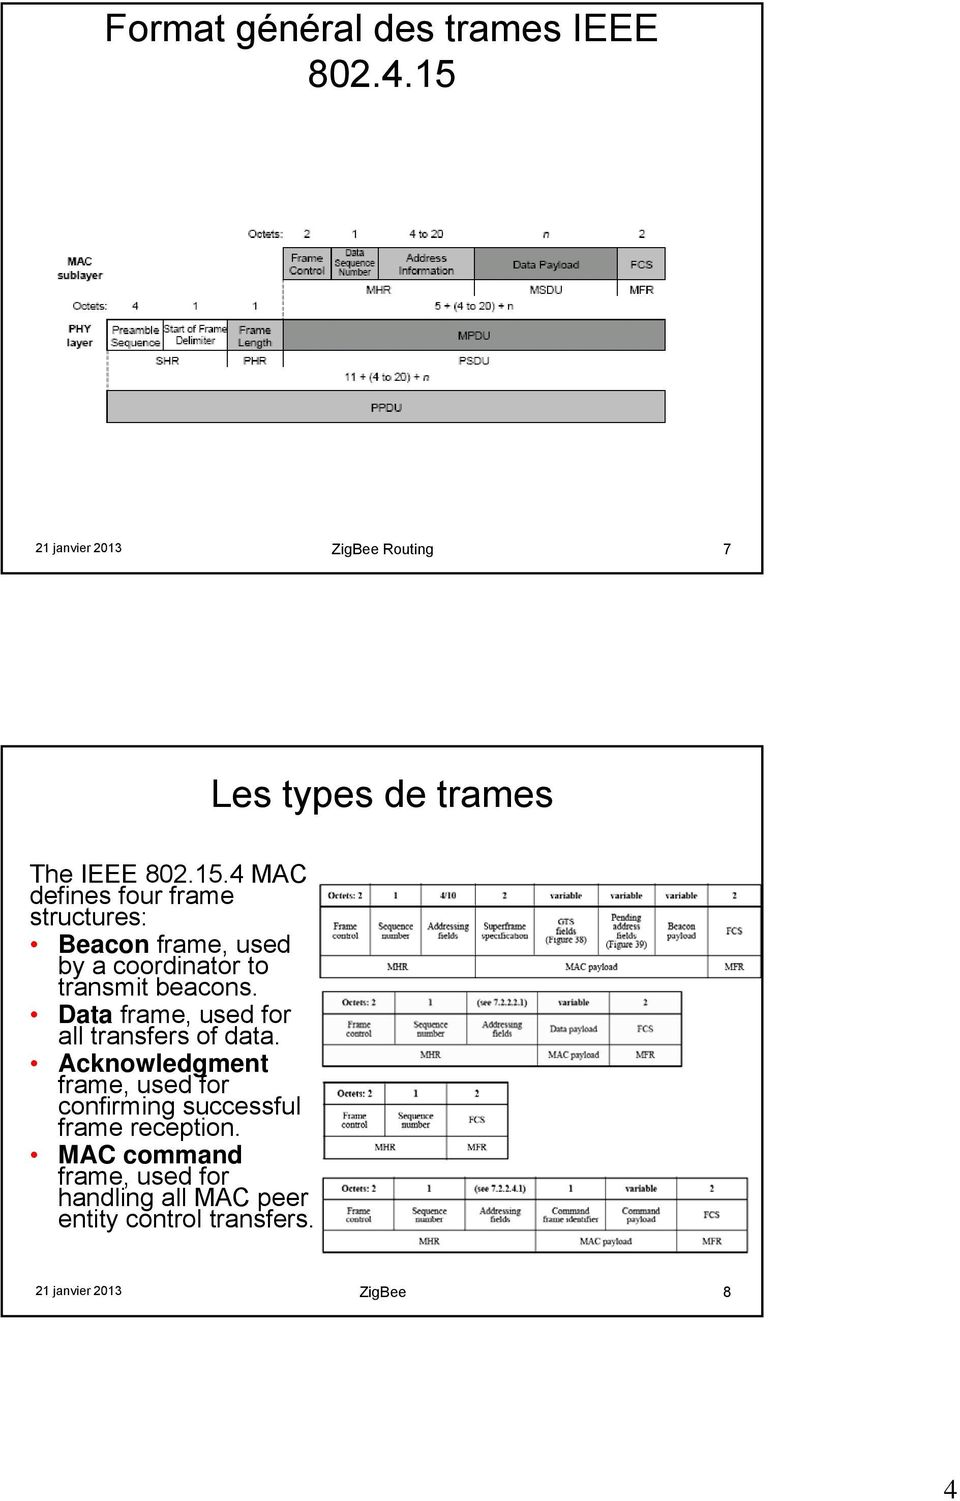 Data frame, used for all transfers of data.